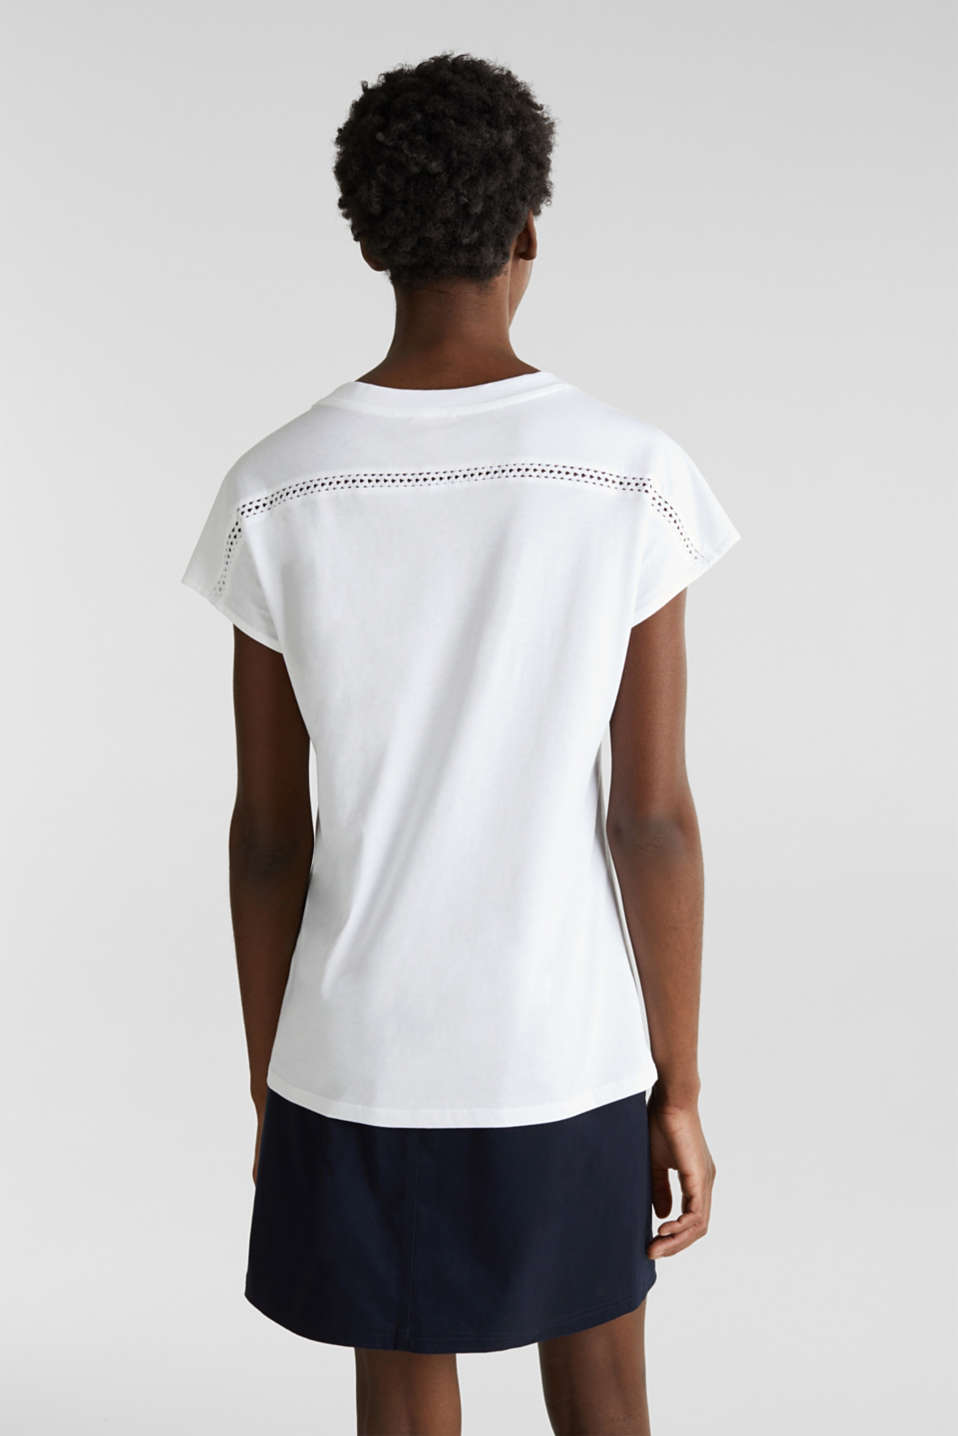 Open-work pattern top, 100% cotton, WHITE, detail image number 3